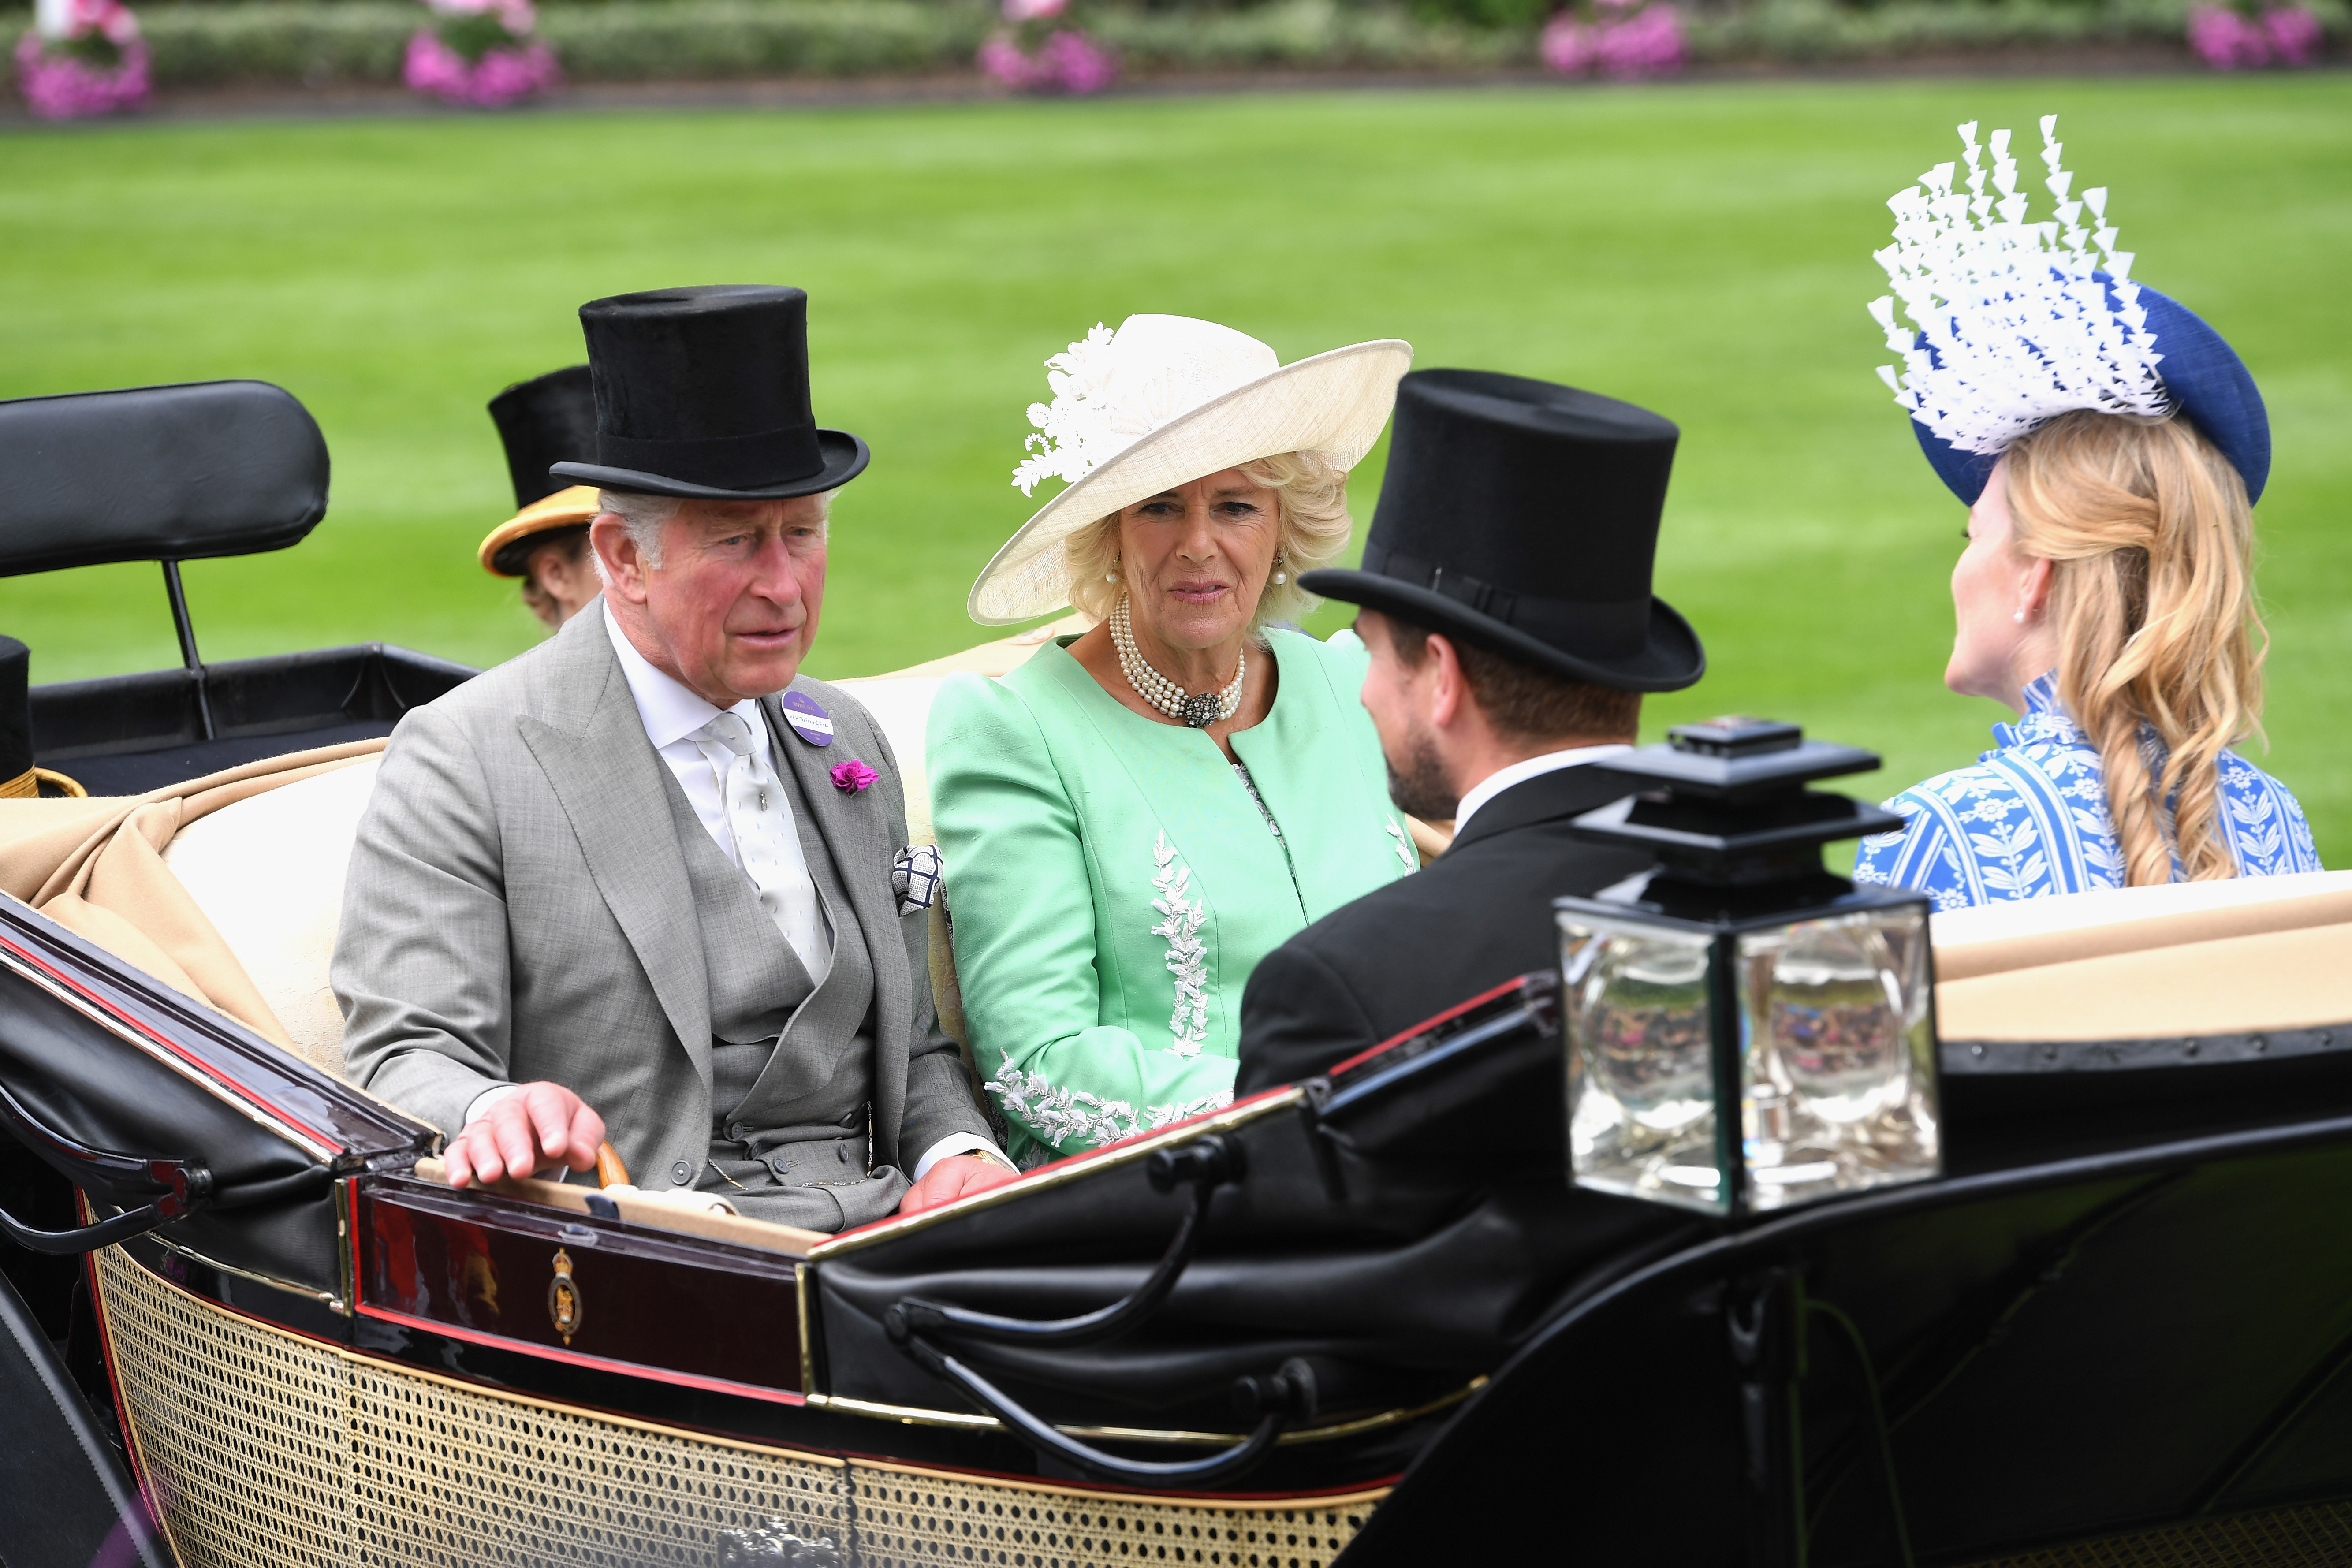 (L-R) Prince Charles, Prince of Wales, Camilla, Duchess of Cornwall, Peter Phillips and Autumn Phillips arrive in the royal procession on day 2 of Royal Ascot at Ascot Racecourse on June 20, 2018 in Ascot, England.